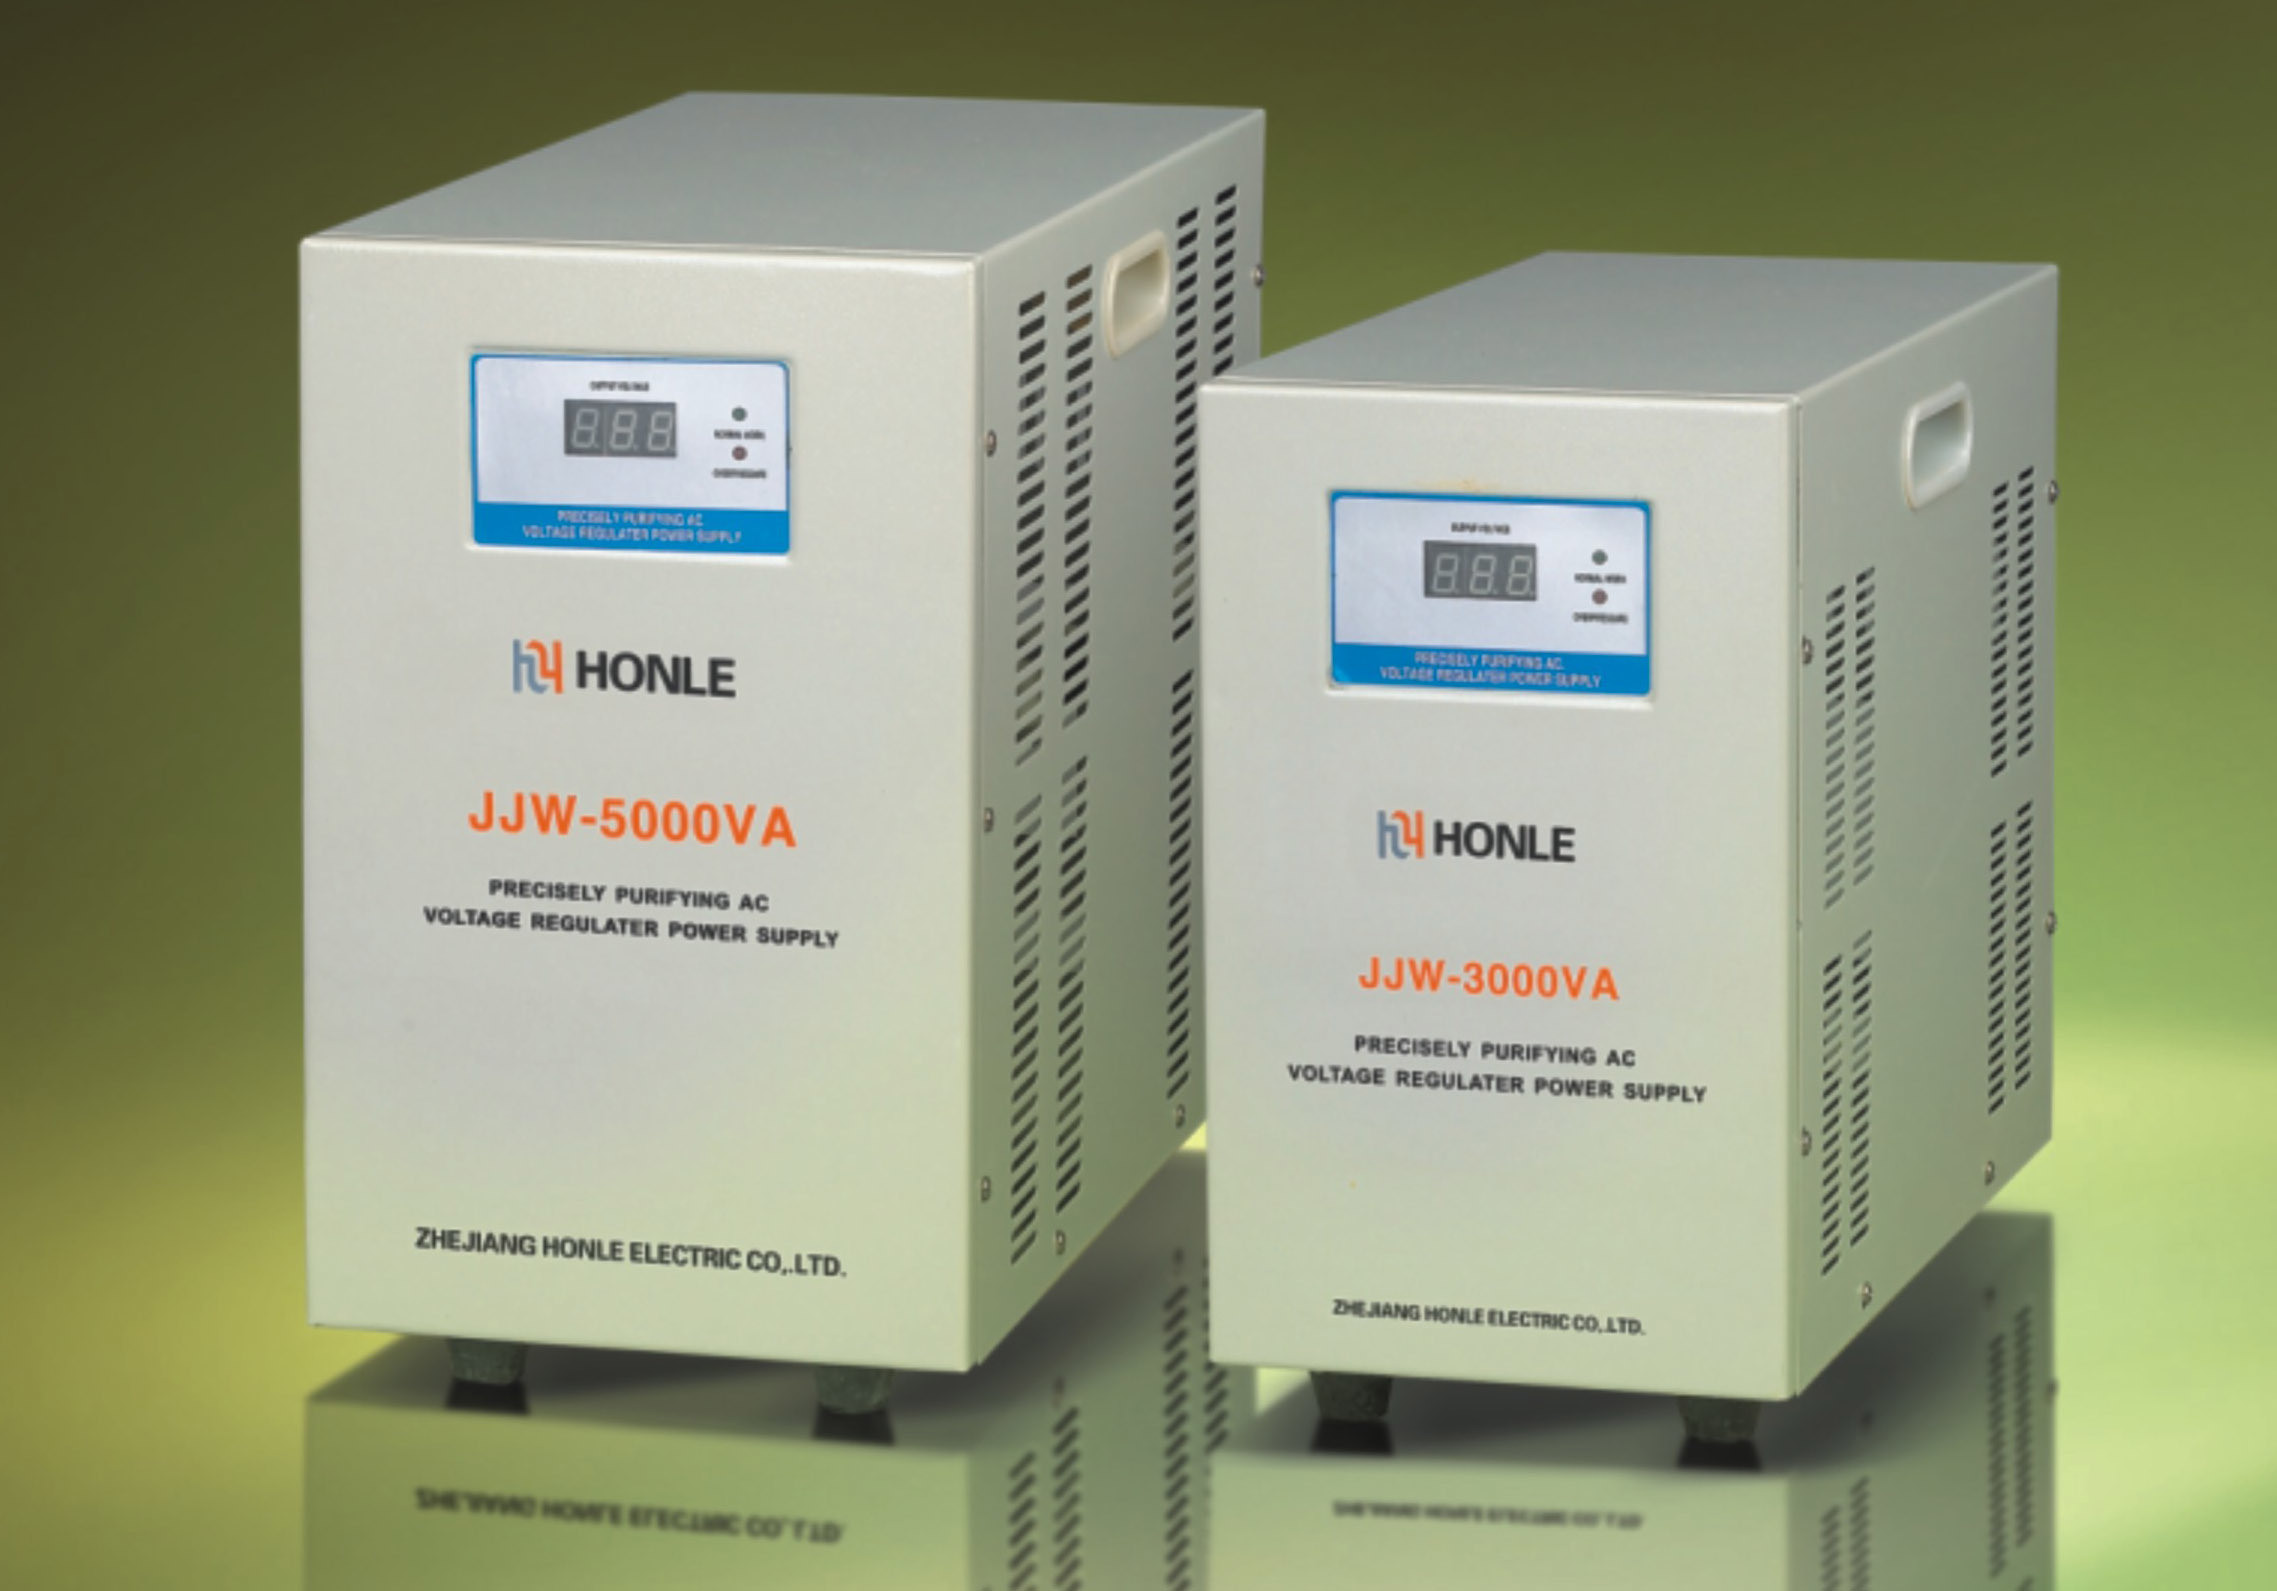 Jjw Series Precision Pruifying Single-Phase AC Stabilizer